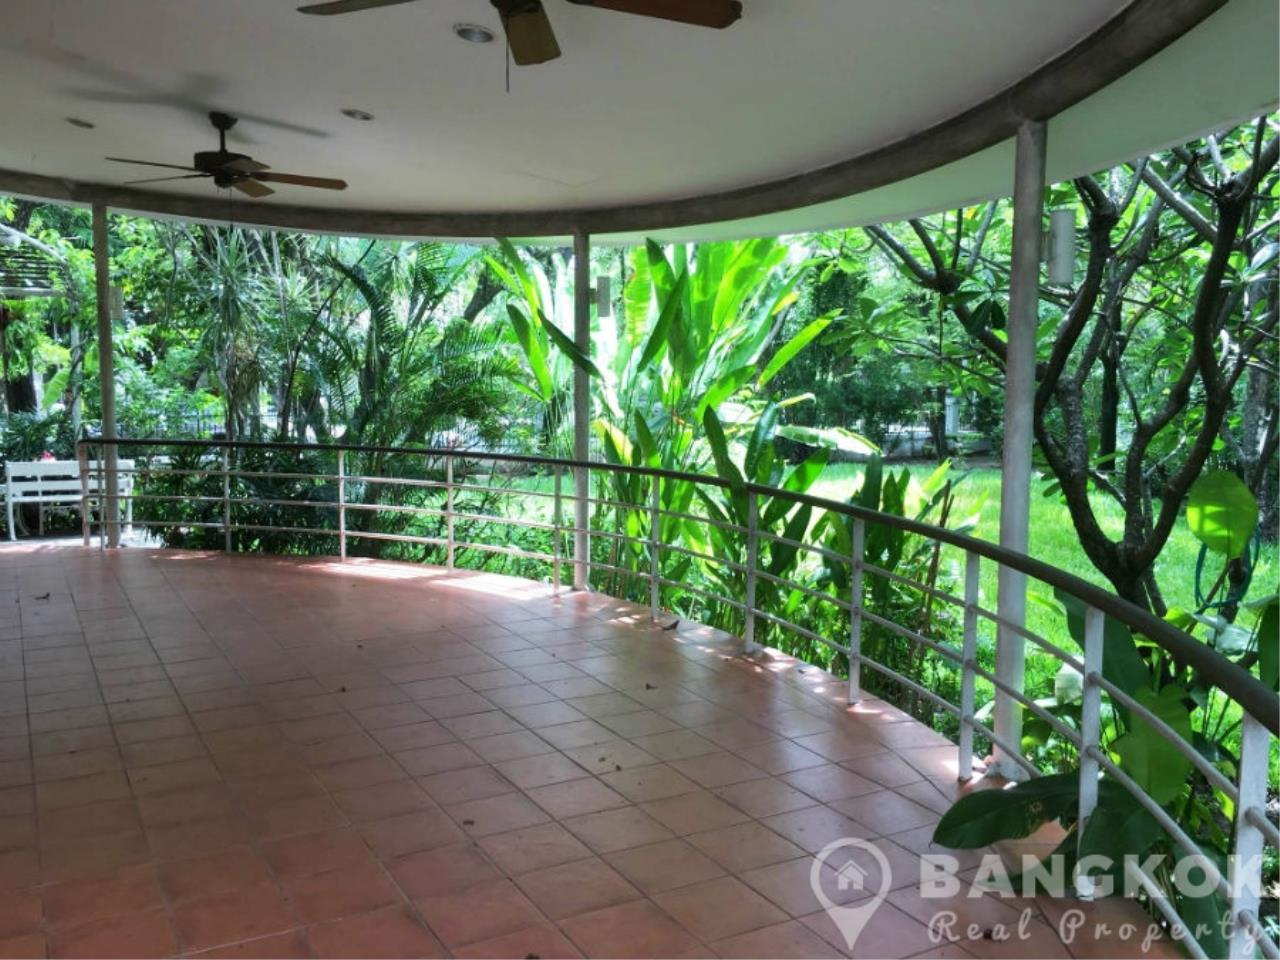 Bangkok Real Property Agency's Spacious, Detached 4 Bed 4 Bath House near Bangkok Patana School  2